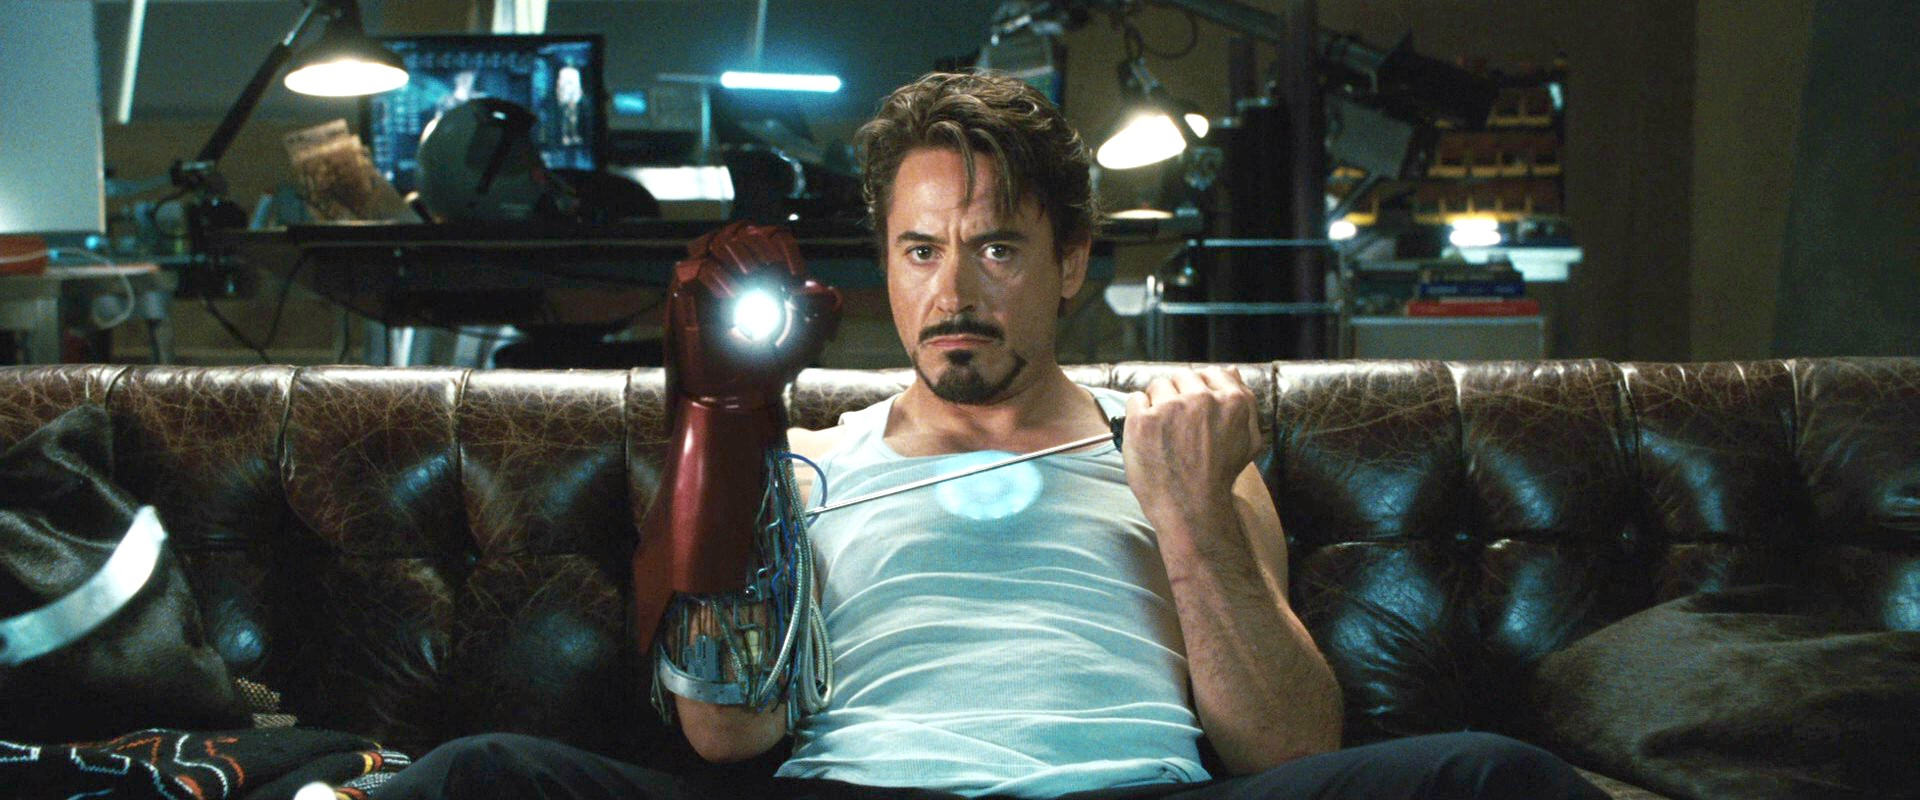 A Great Character Moment Robert Downey Jr In Iron Man